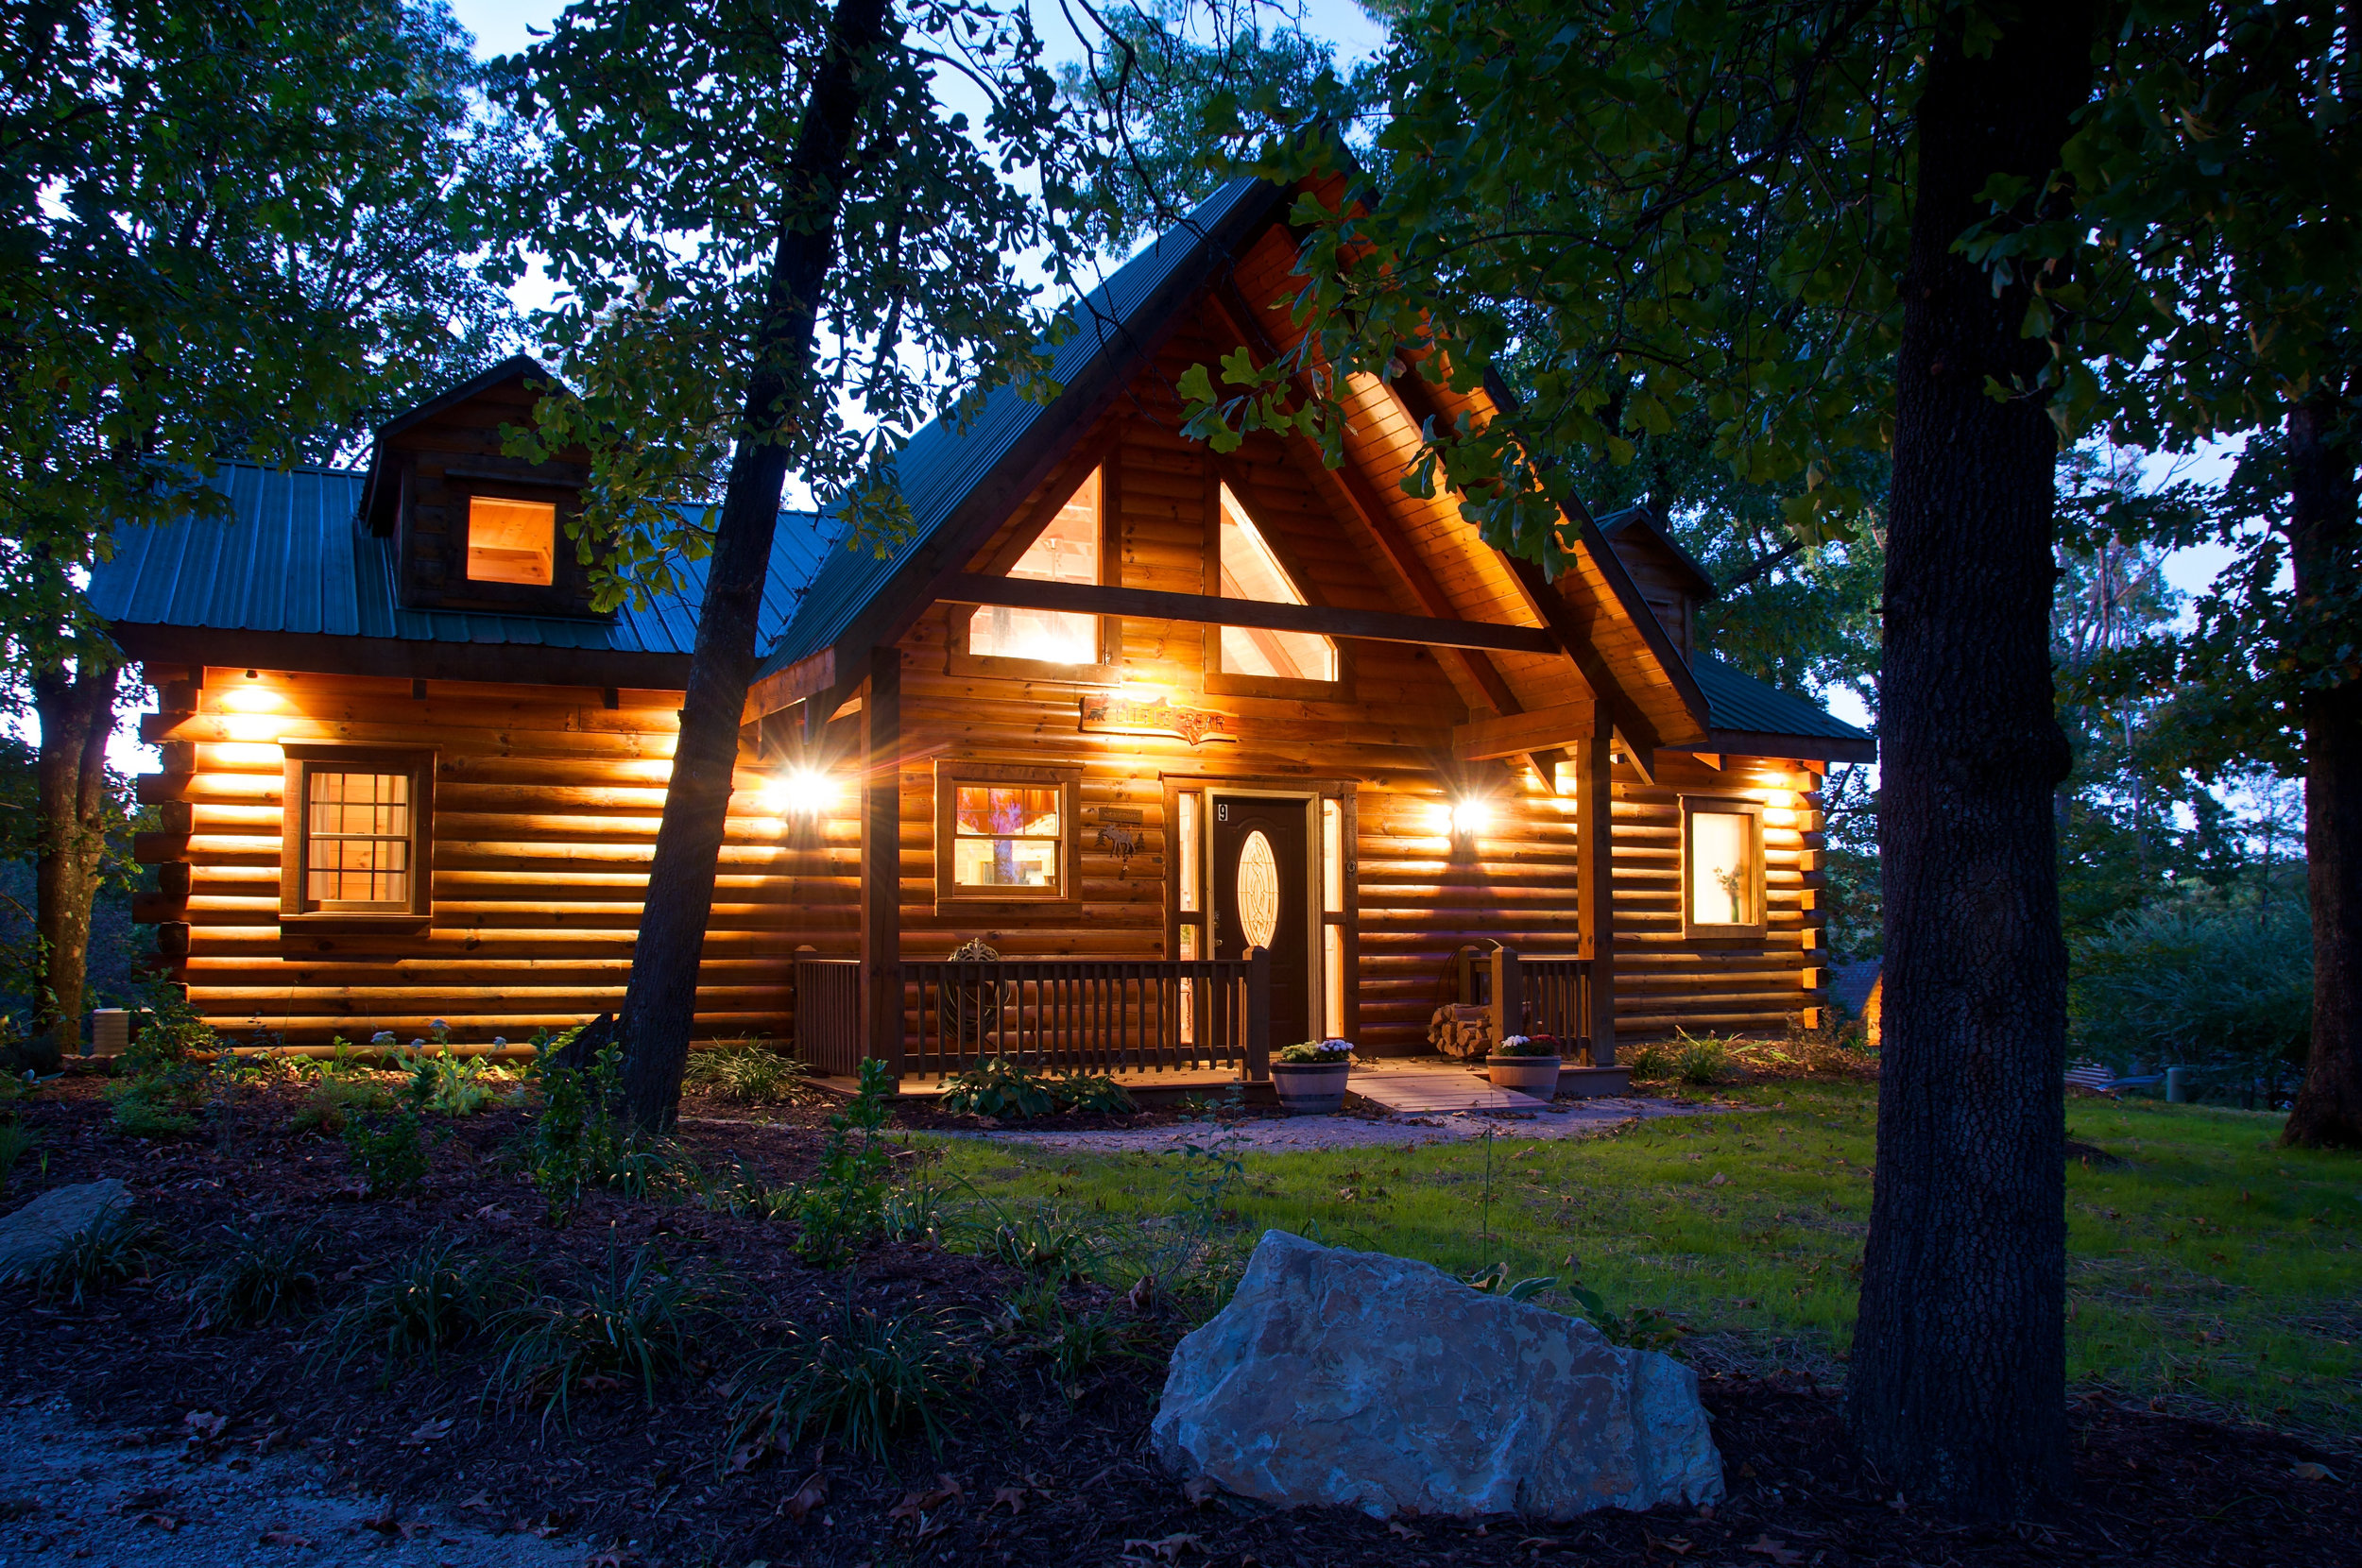 cabins rental pinterest vacation cabin of rentals outdoor pin the wedding lake luxury venue ozarks